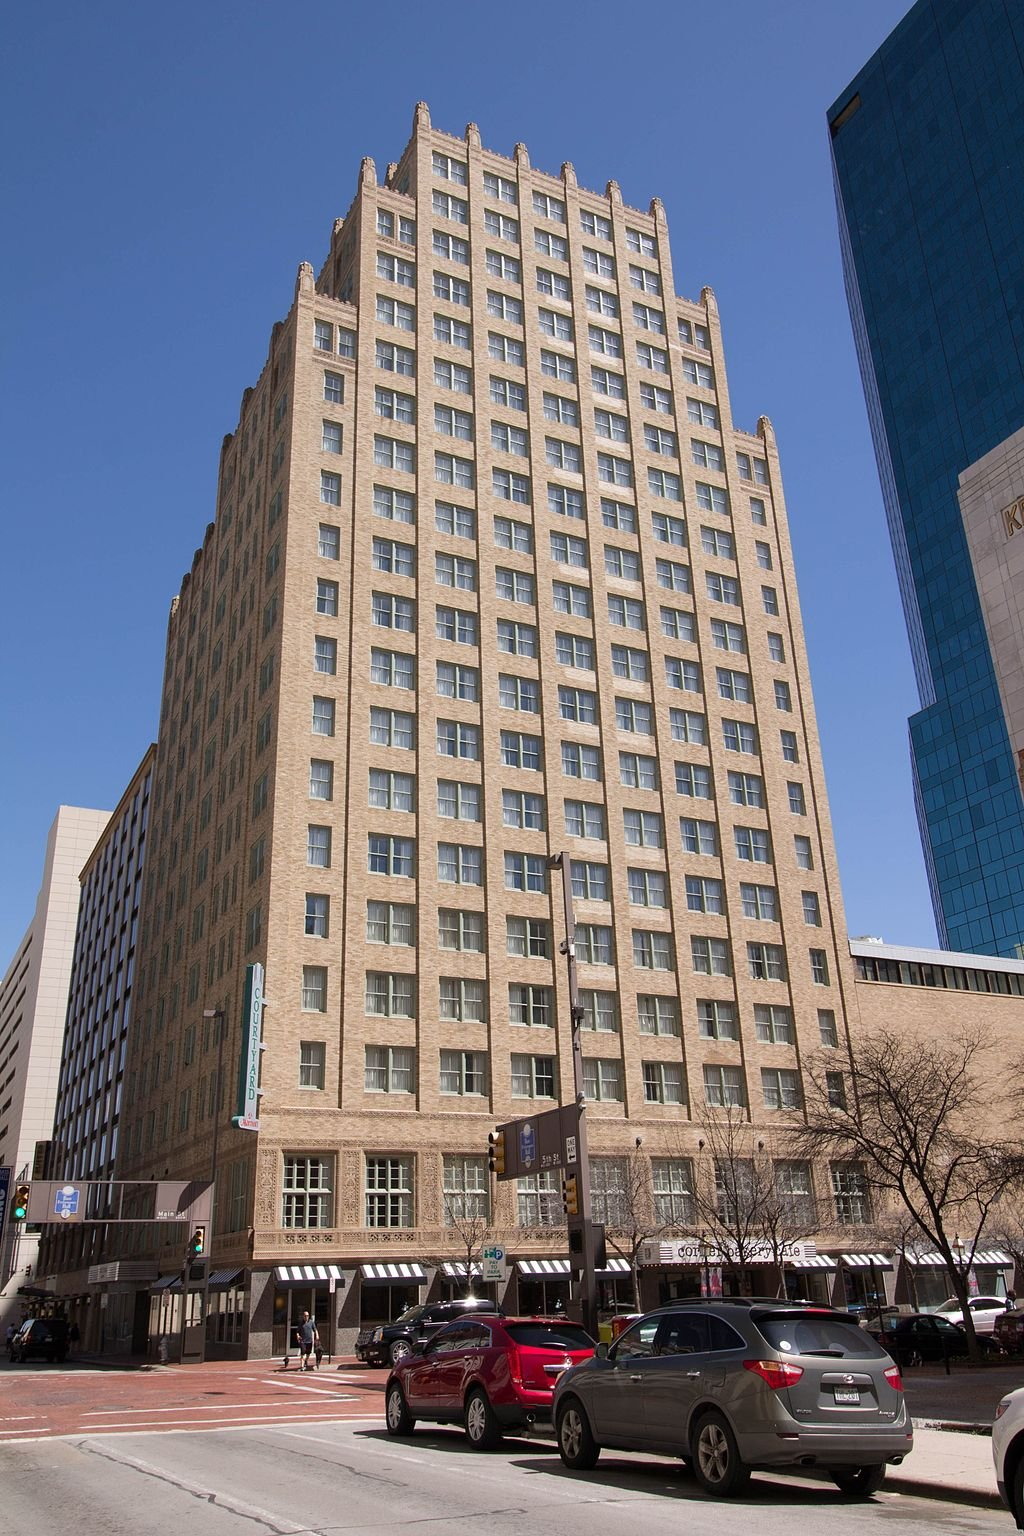 The Courtyard Fort Worth Downtown/Blackstone was built in 1929 and is a fine example of Art Deco architecture.